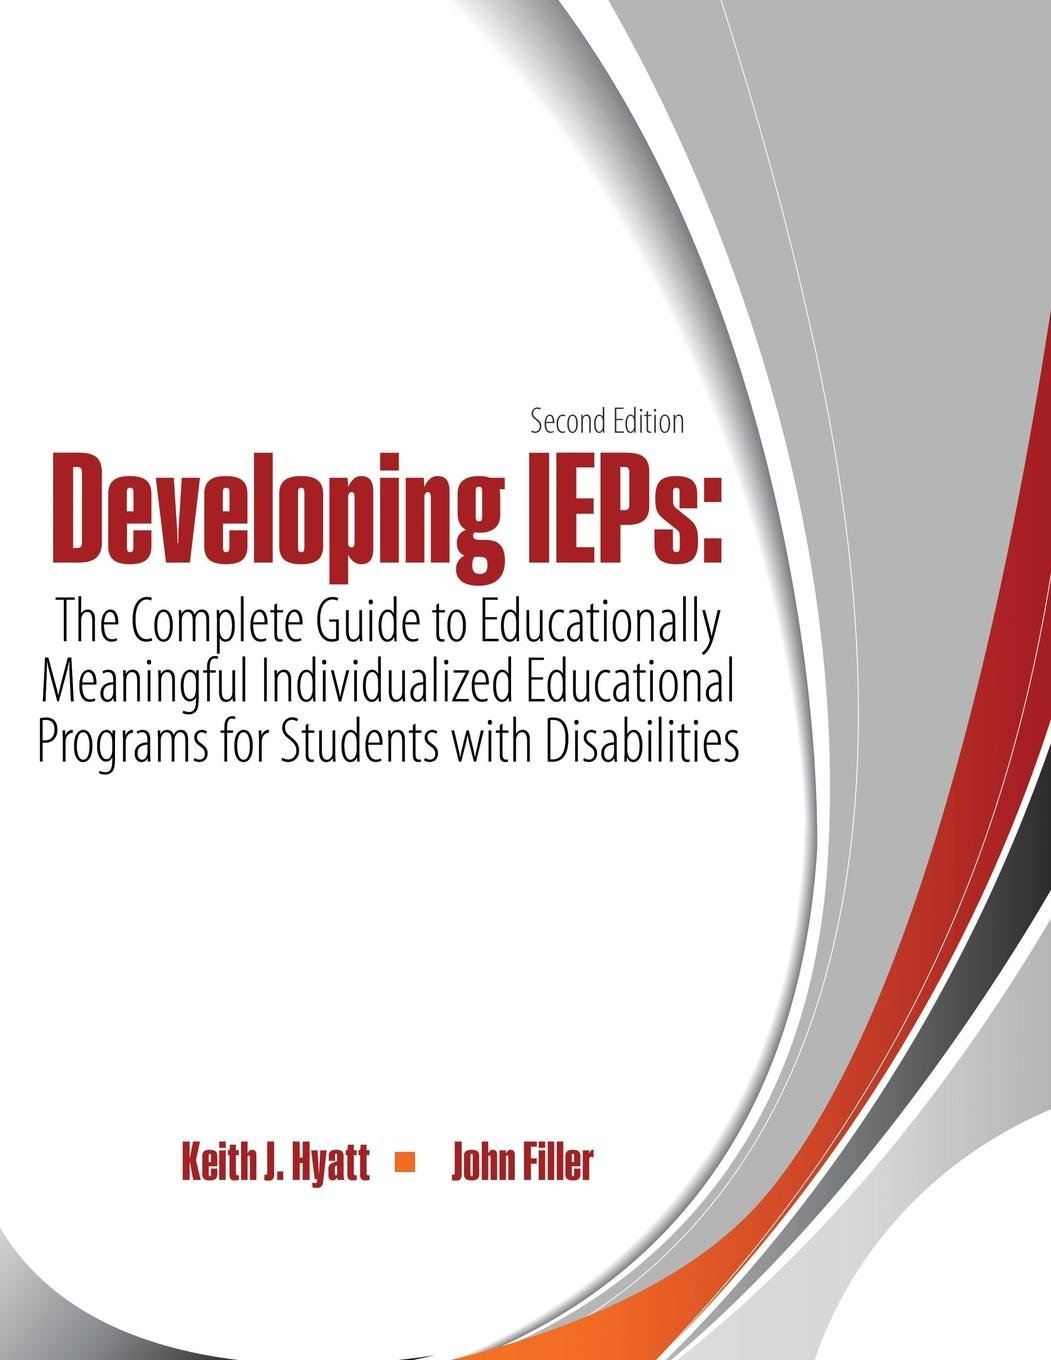 Developing IEPs: The Complete Guide to Educationally Meaningful Individualized Educational Programs for Students with Disabilities pdf